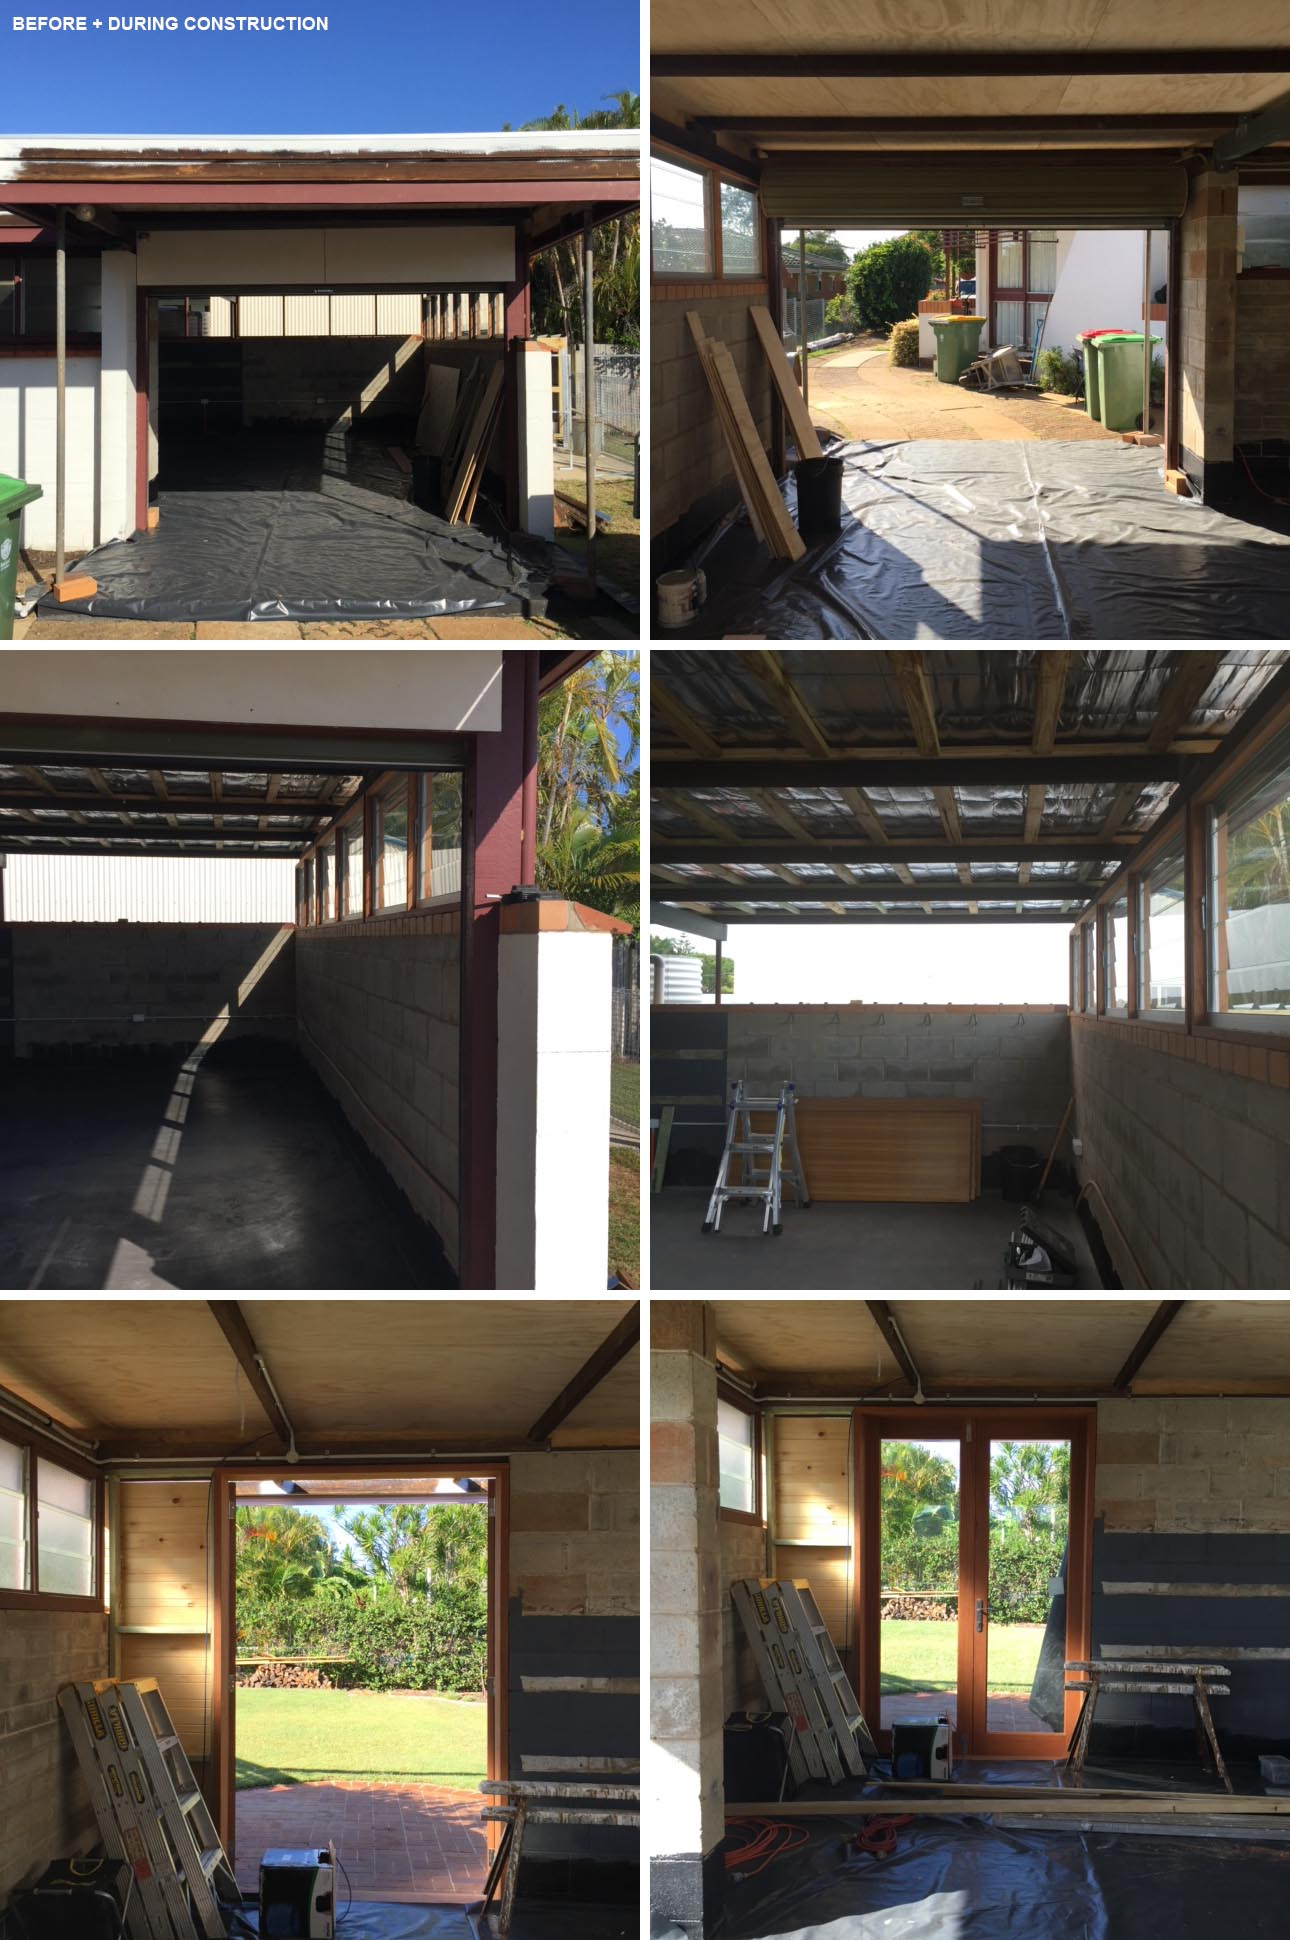 BEFORE PHOTOS - A converted carport acts as an office for 4-5 people, and can be transformed into a secondary suite if needed one day.